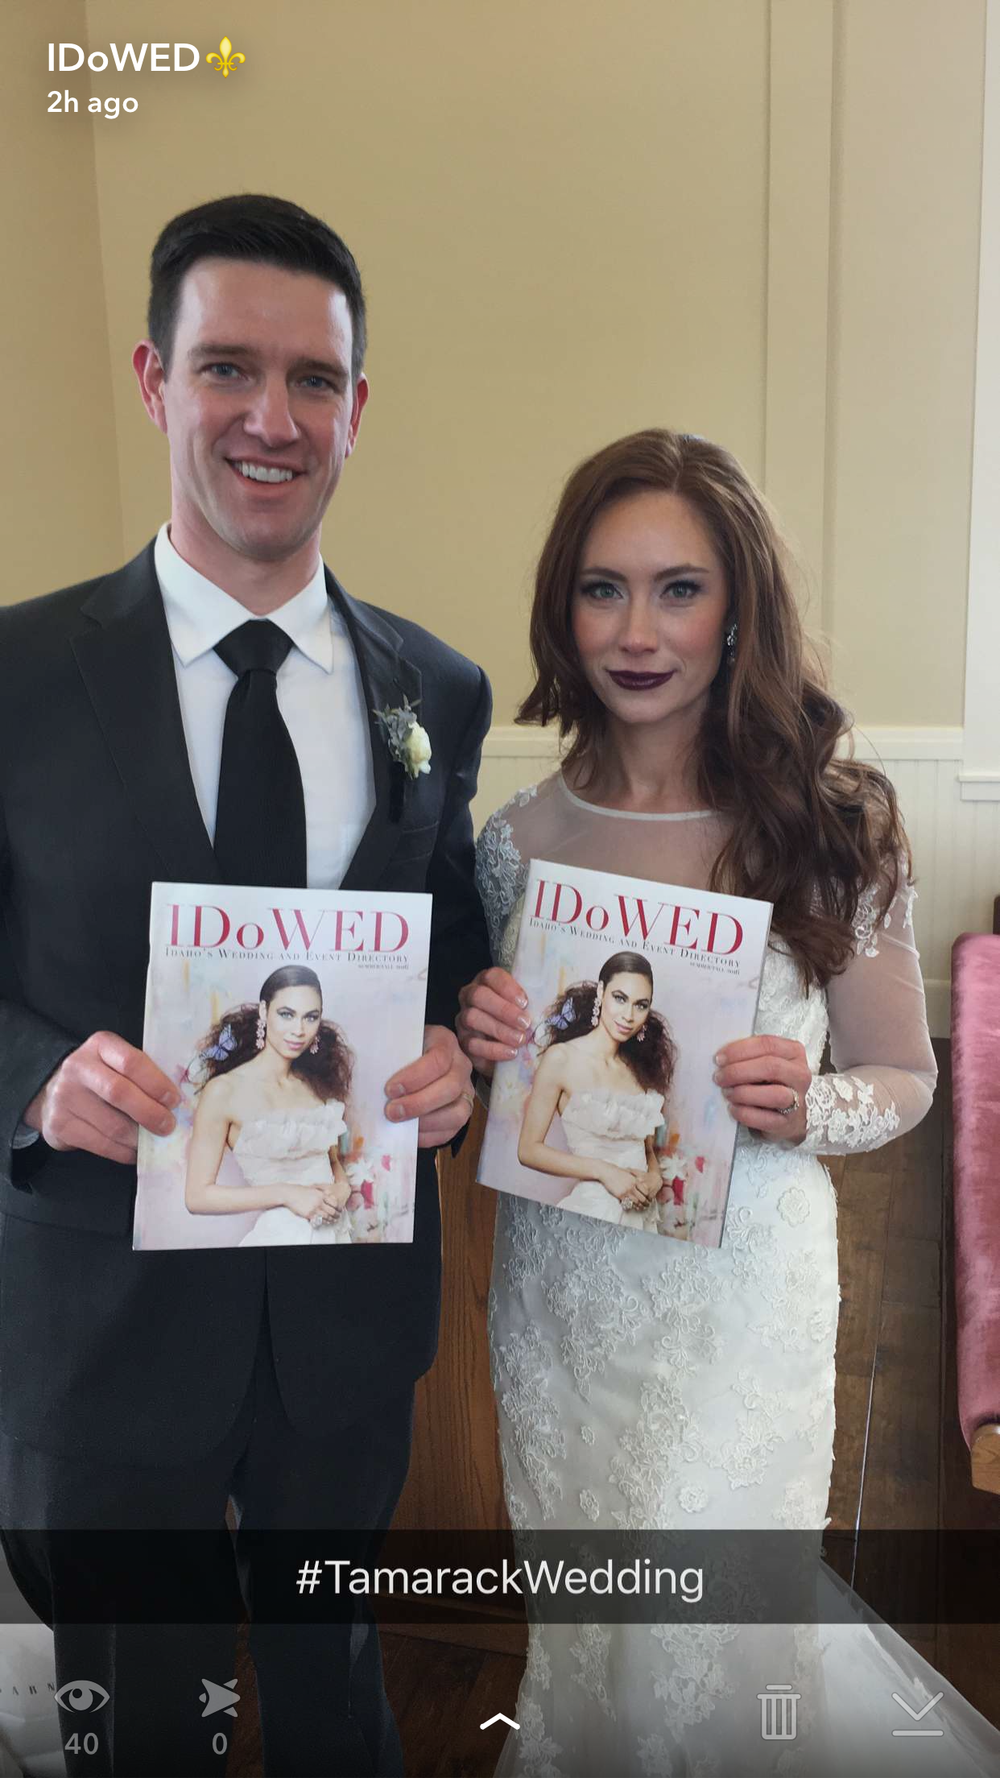 idaho wedding magazine